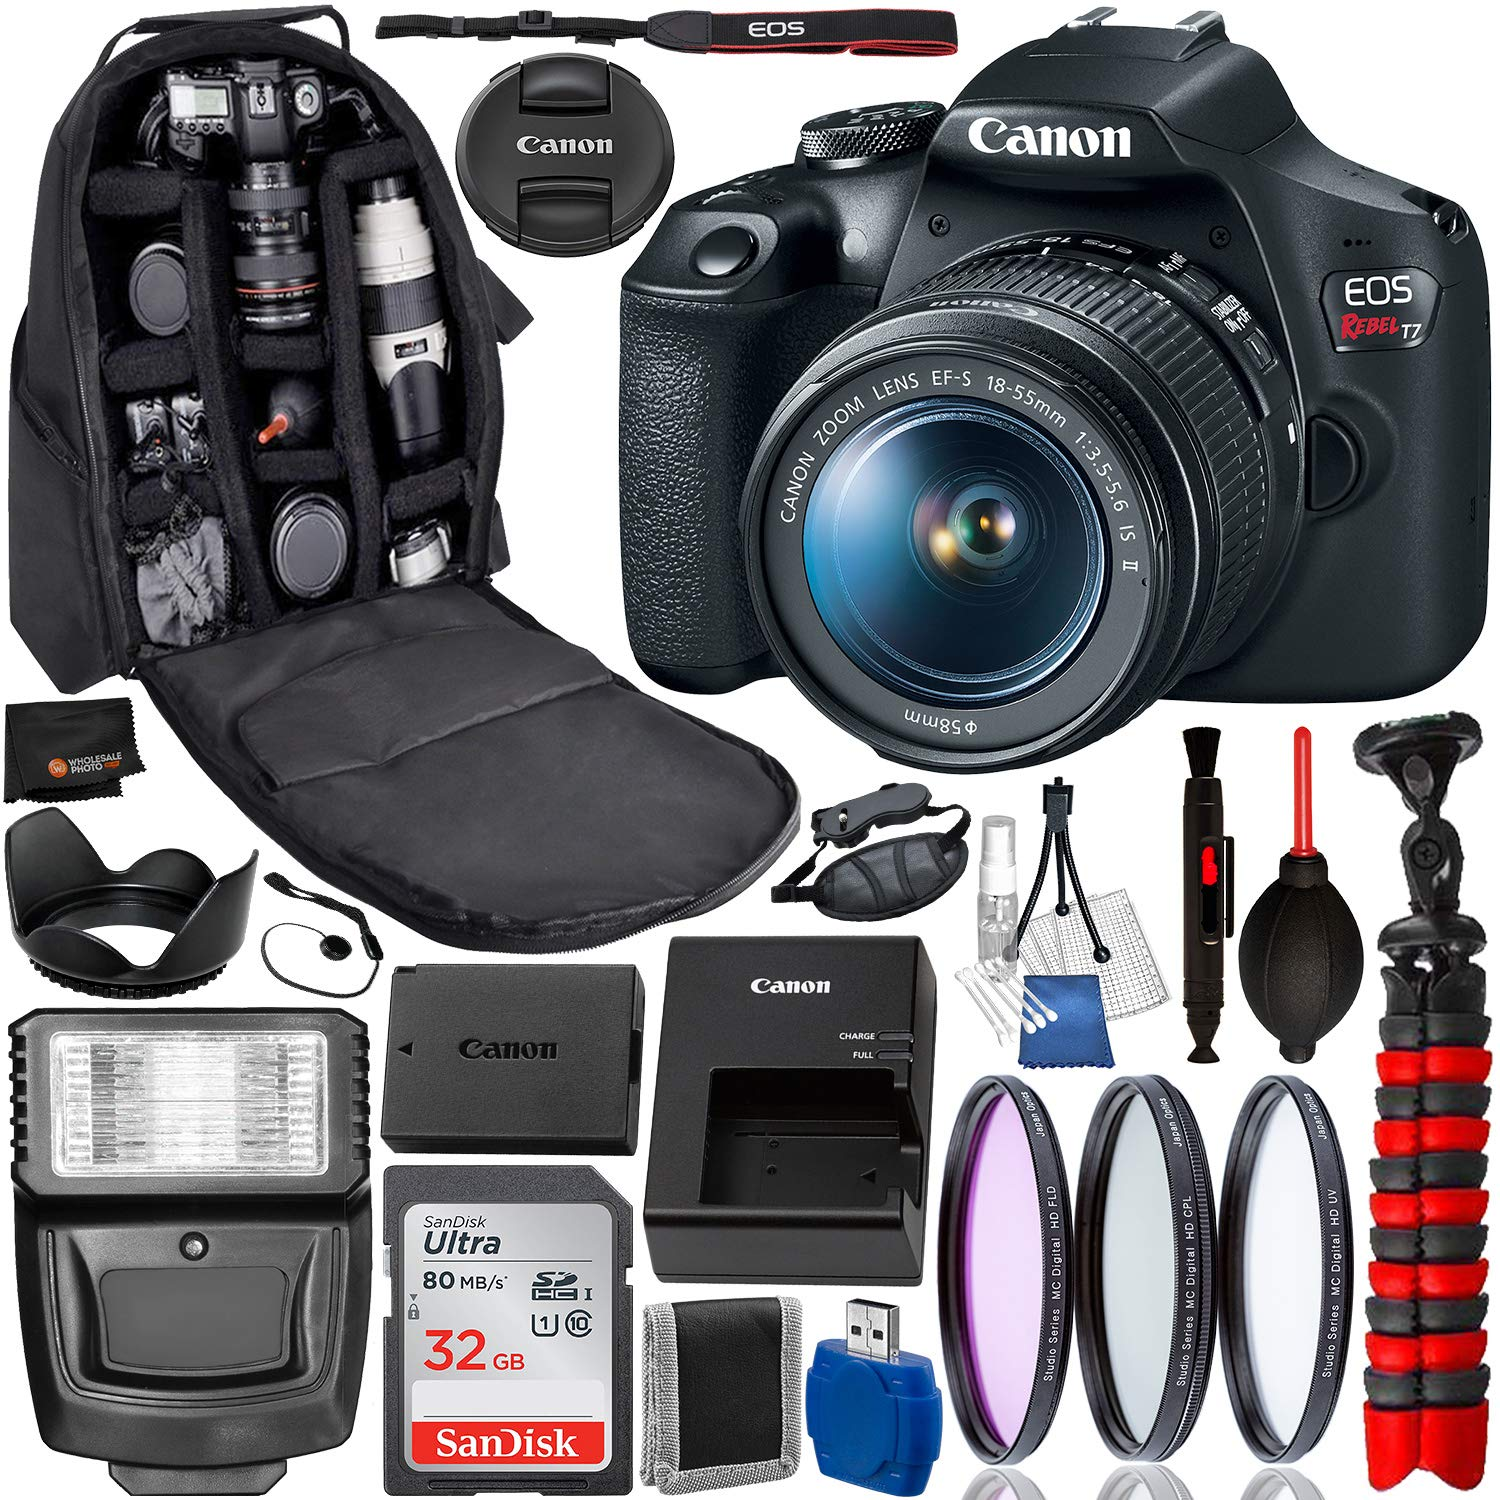 Canon EOS Rebel T7 DSLR Camera with 18-55mm Lens(2727C002 USA) Professional Bundle Package Deal - 2727C002 - USA Warranty - SanDisk Ultra 32GB SDHC Memory Card + Professional Backpack + More by Canon